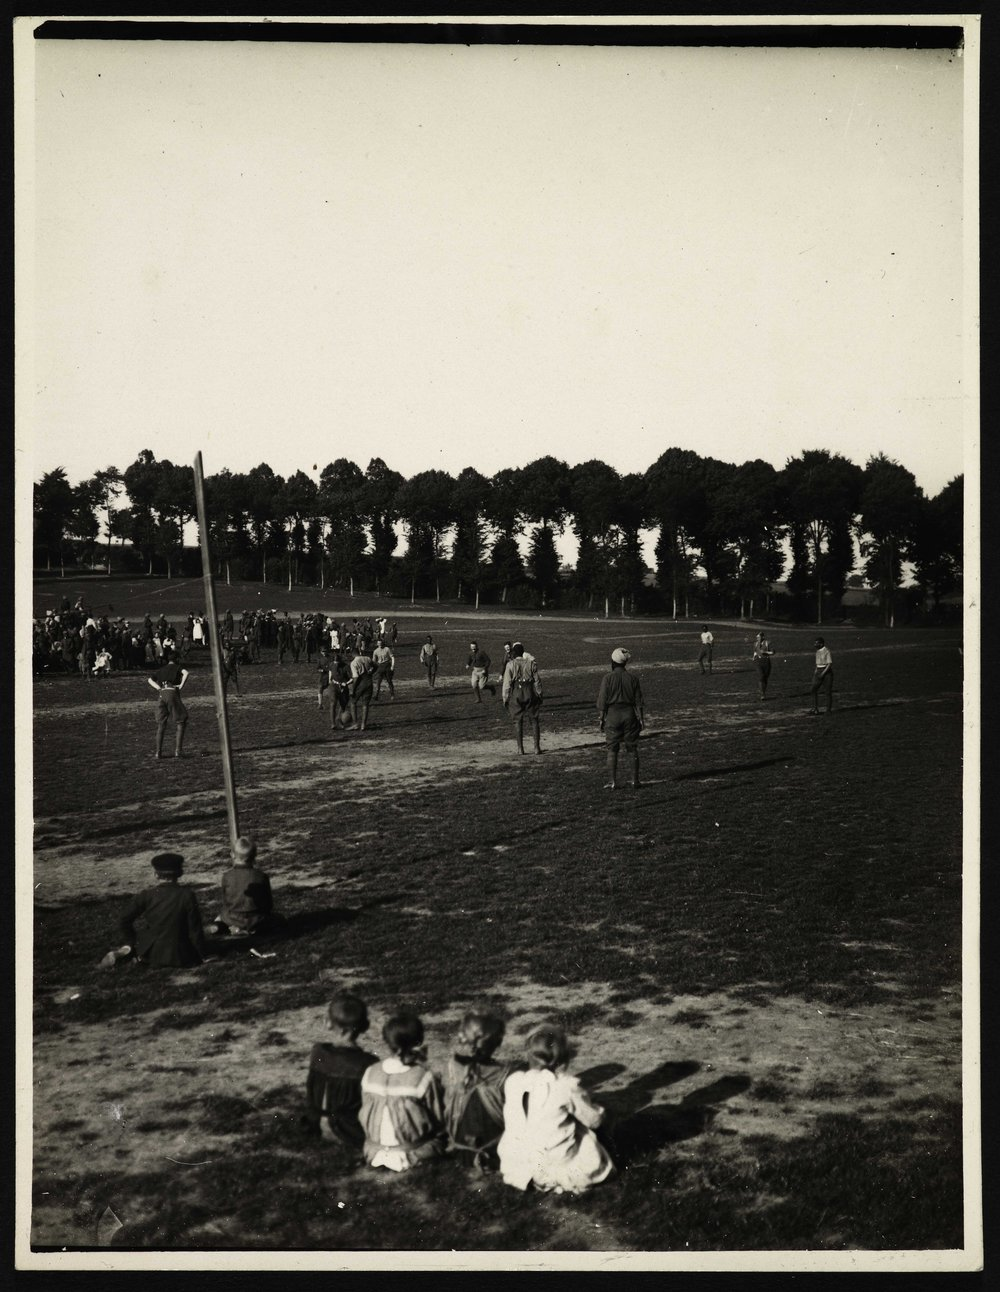 French children watch a British cavalry regiment play a match against Indian soldiers of the 18th Lancers